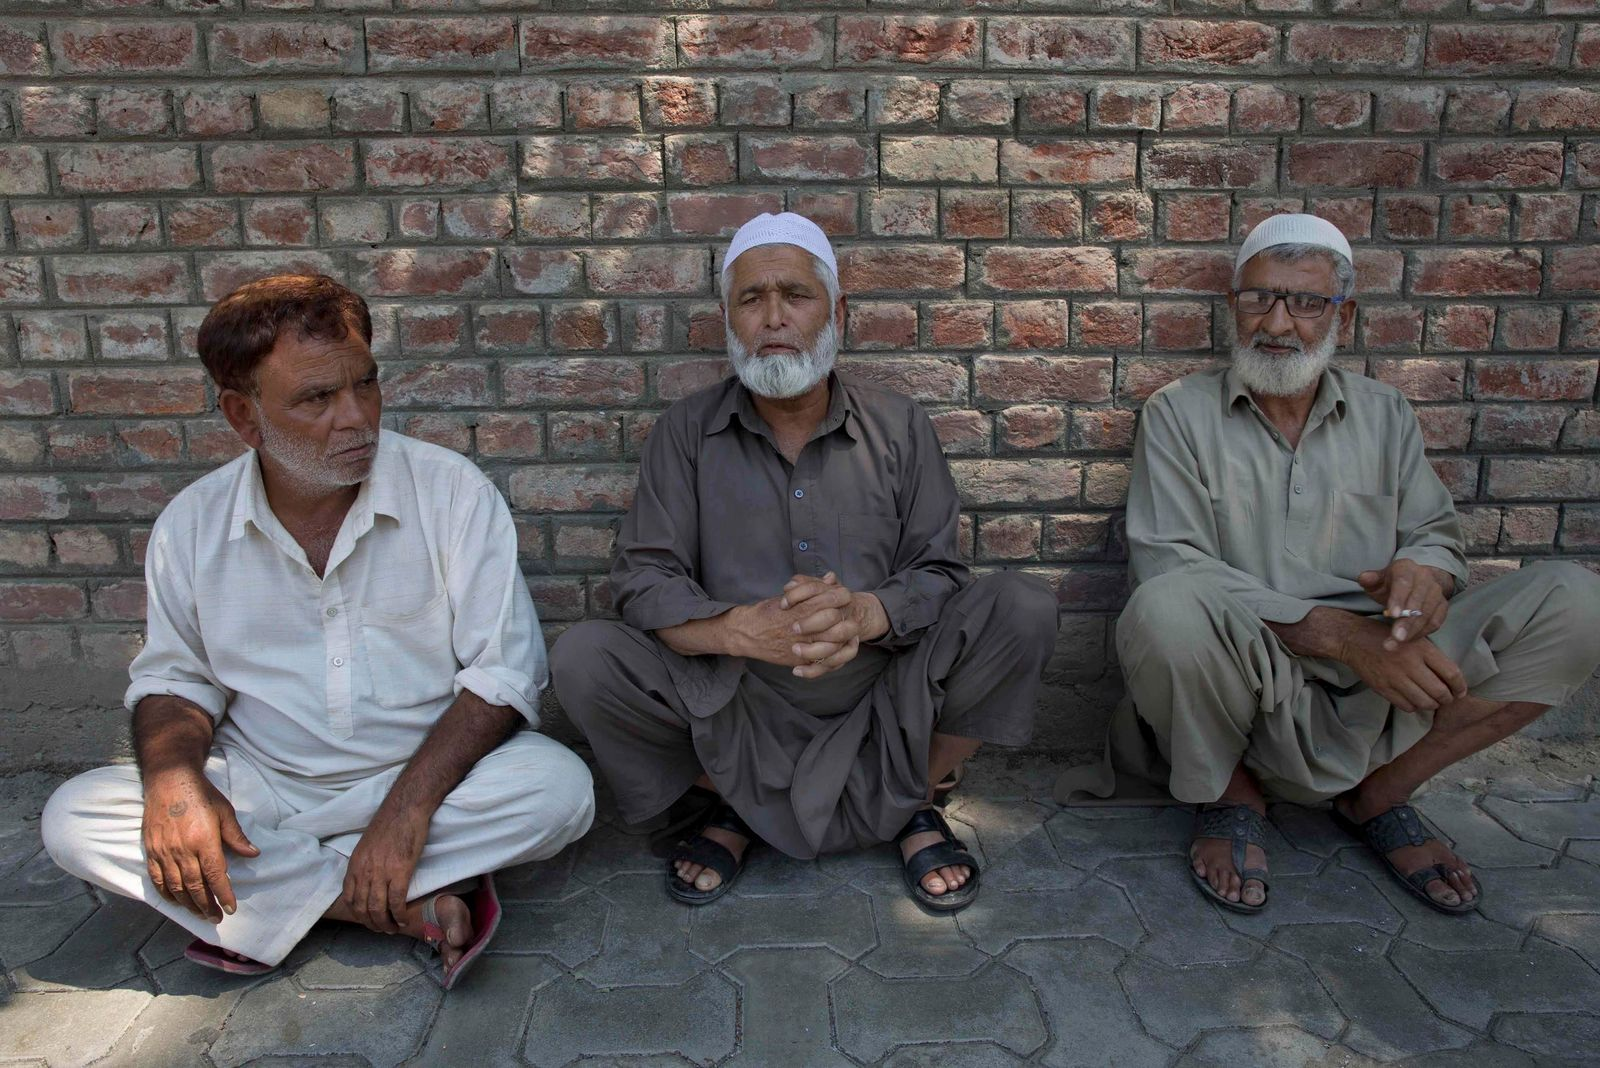 Kashmiri men sit on a footpath outside a police station waiting to hear about their relatives who were detained during night raids in Srinagar, Indian controlled Kashmir, Tuesday, Aug. 20, 2019. Authorities say thousands of people, mostly young male protesters, have been arrested and detained in Indian-administered Kashmir amid an ongoing communications blackout and security lockdown. (AP Photo/ Dar Yasin)